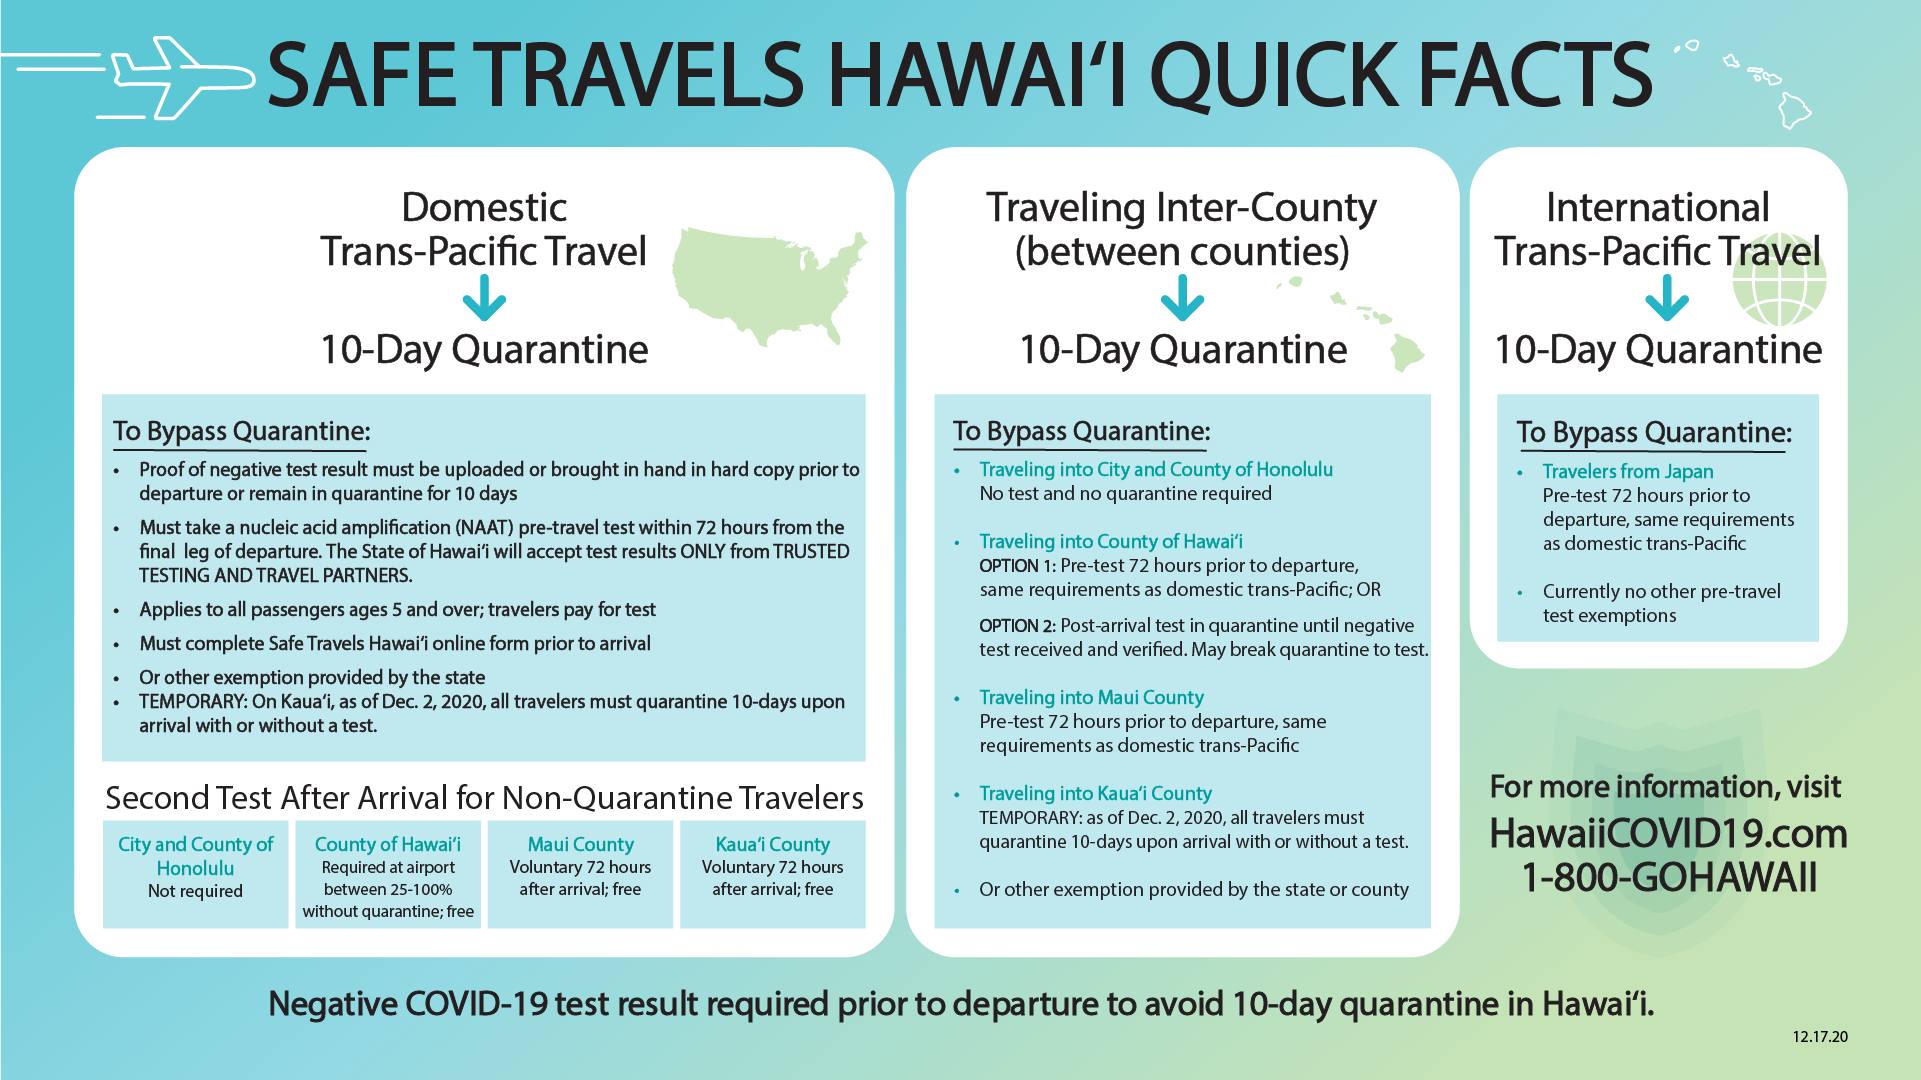 Safe Travels Hawaii Quick Facts - December 17 2020